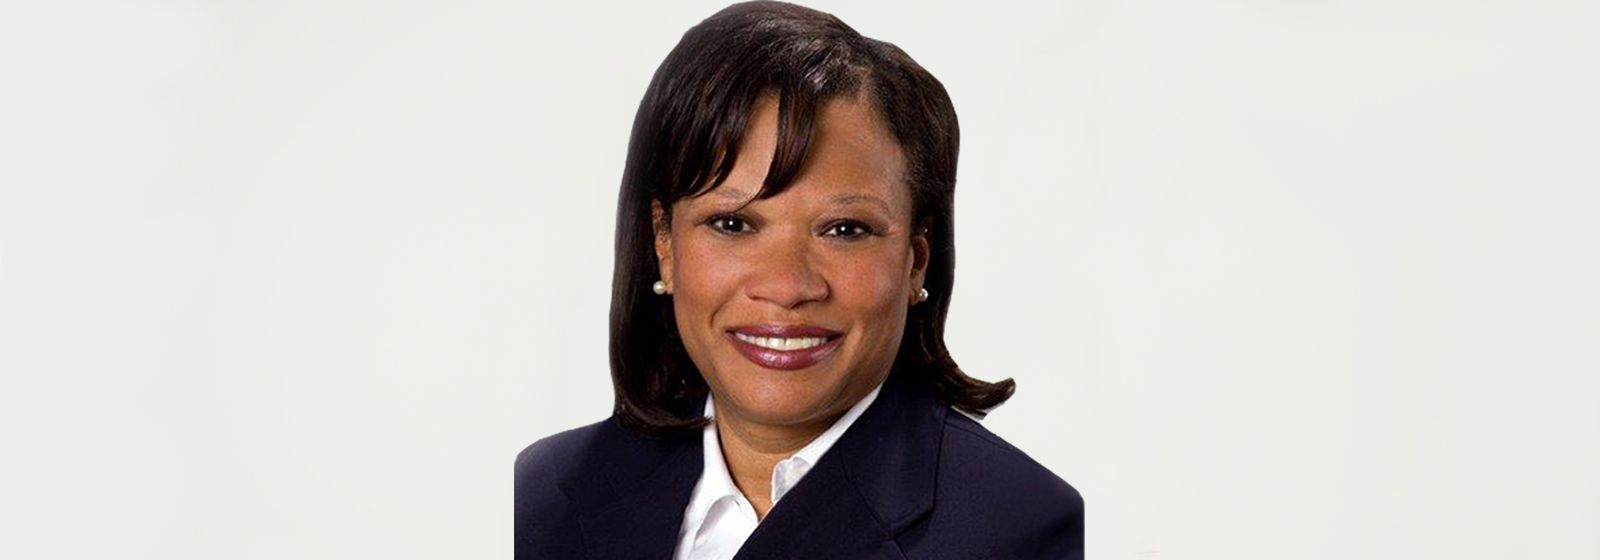 Joni Davis' focus at Duke Energy: Build a diverse and inclusive workforce